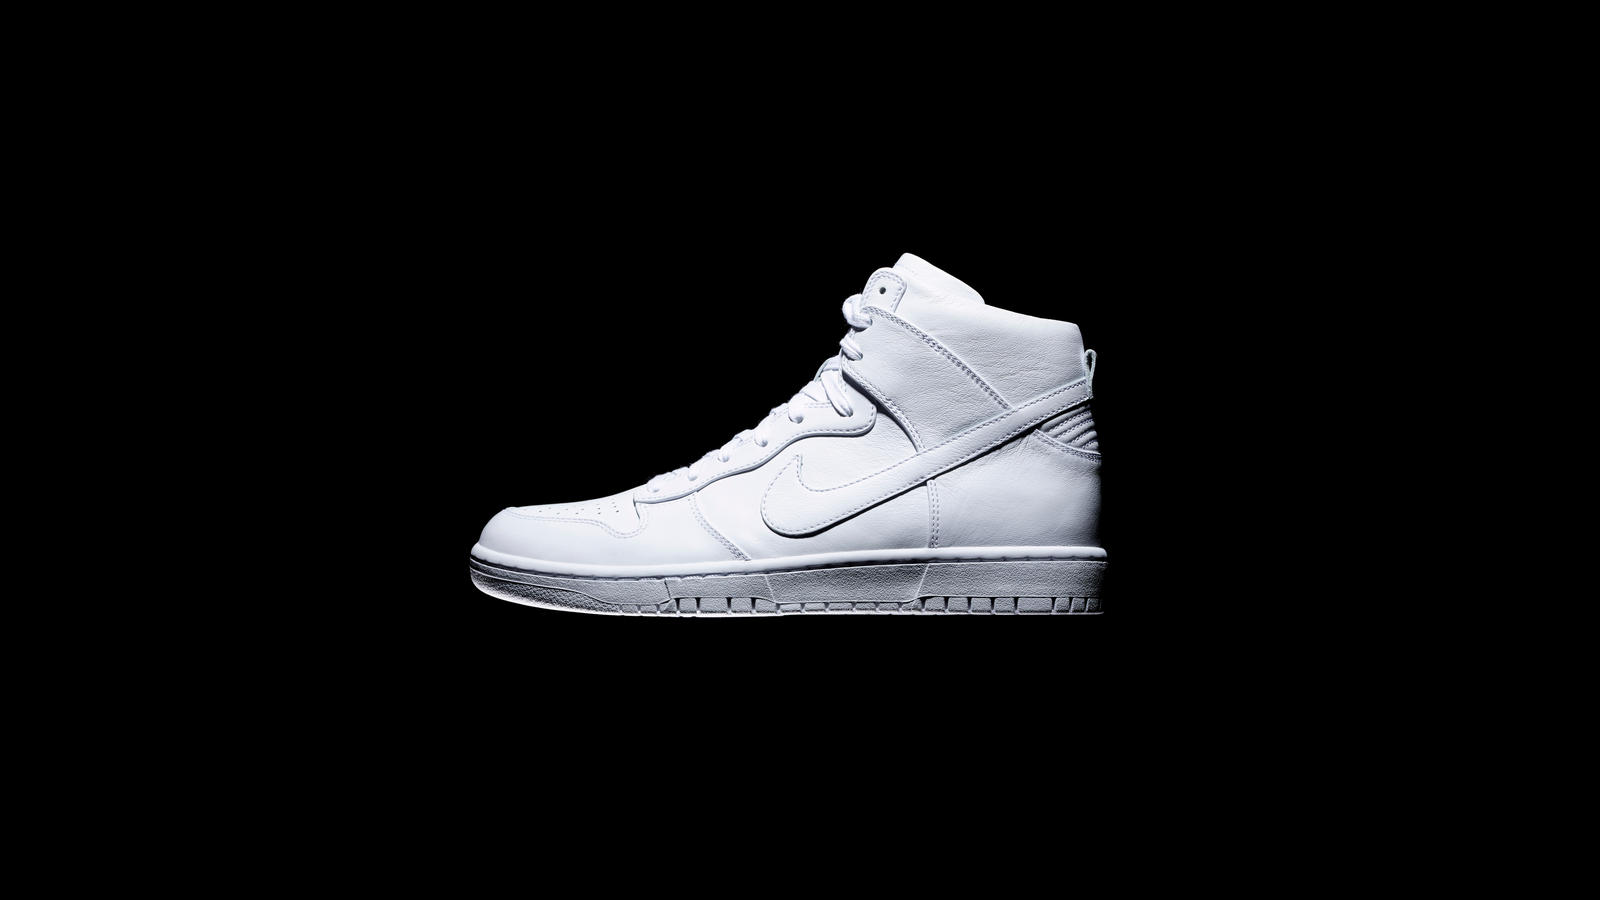 fbf4c13a38e1 The Next Generation of Dunk  The NikeLab Dunk Lux High - Nike News